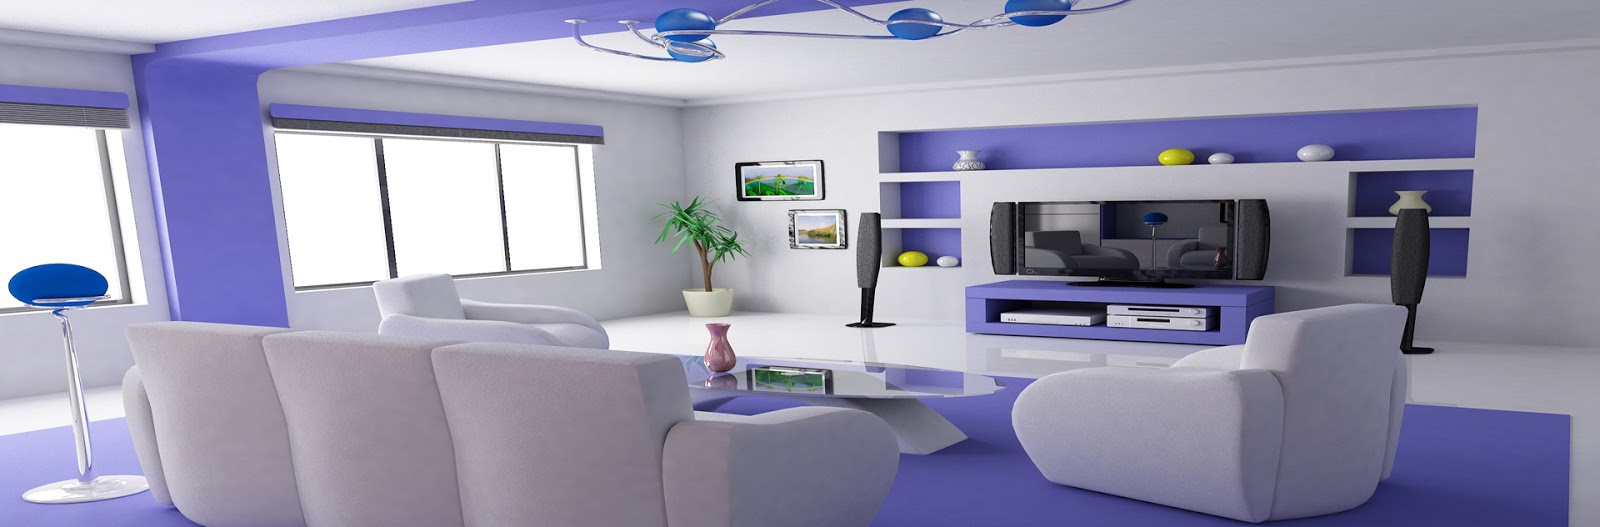 There are few careers that offer so many benefits. As an interior decorator you will have the satisfaction of making your vision a reality. & Imarat Contractor: A Career in Interior Decorating